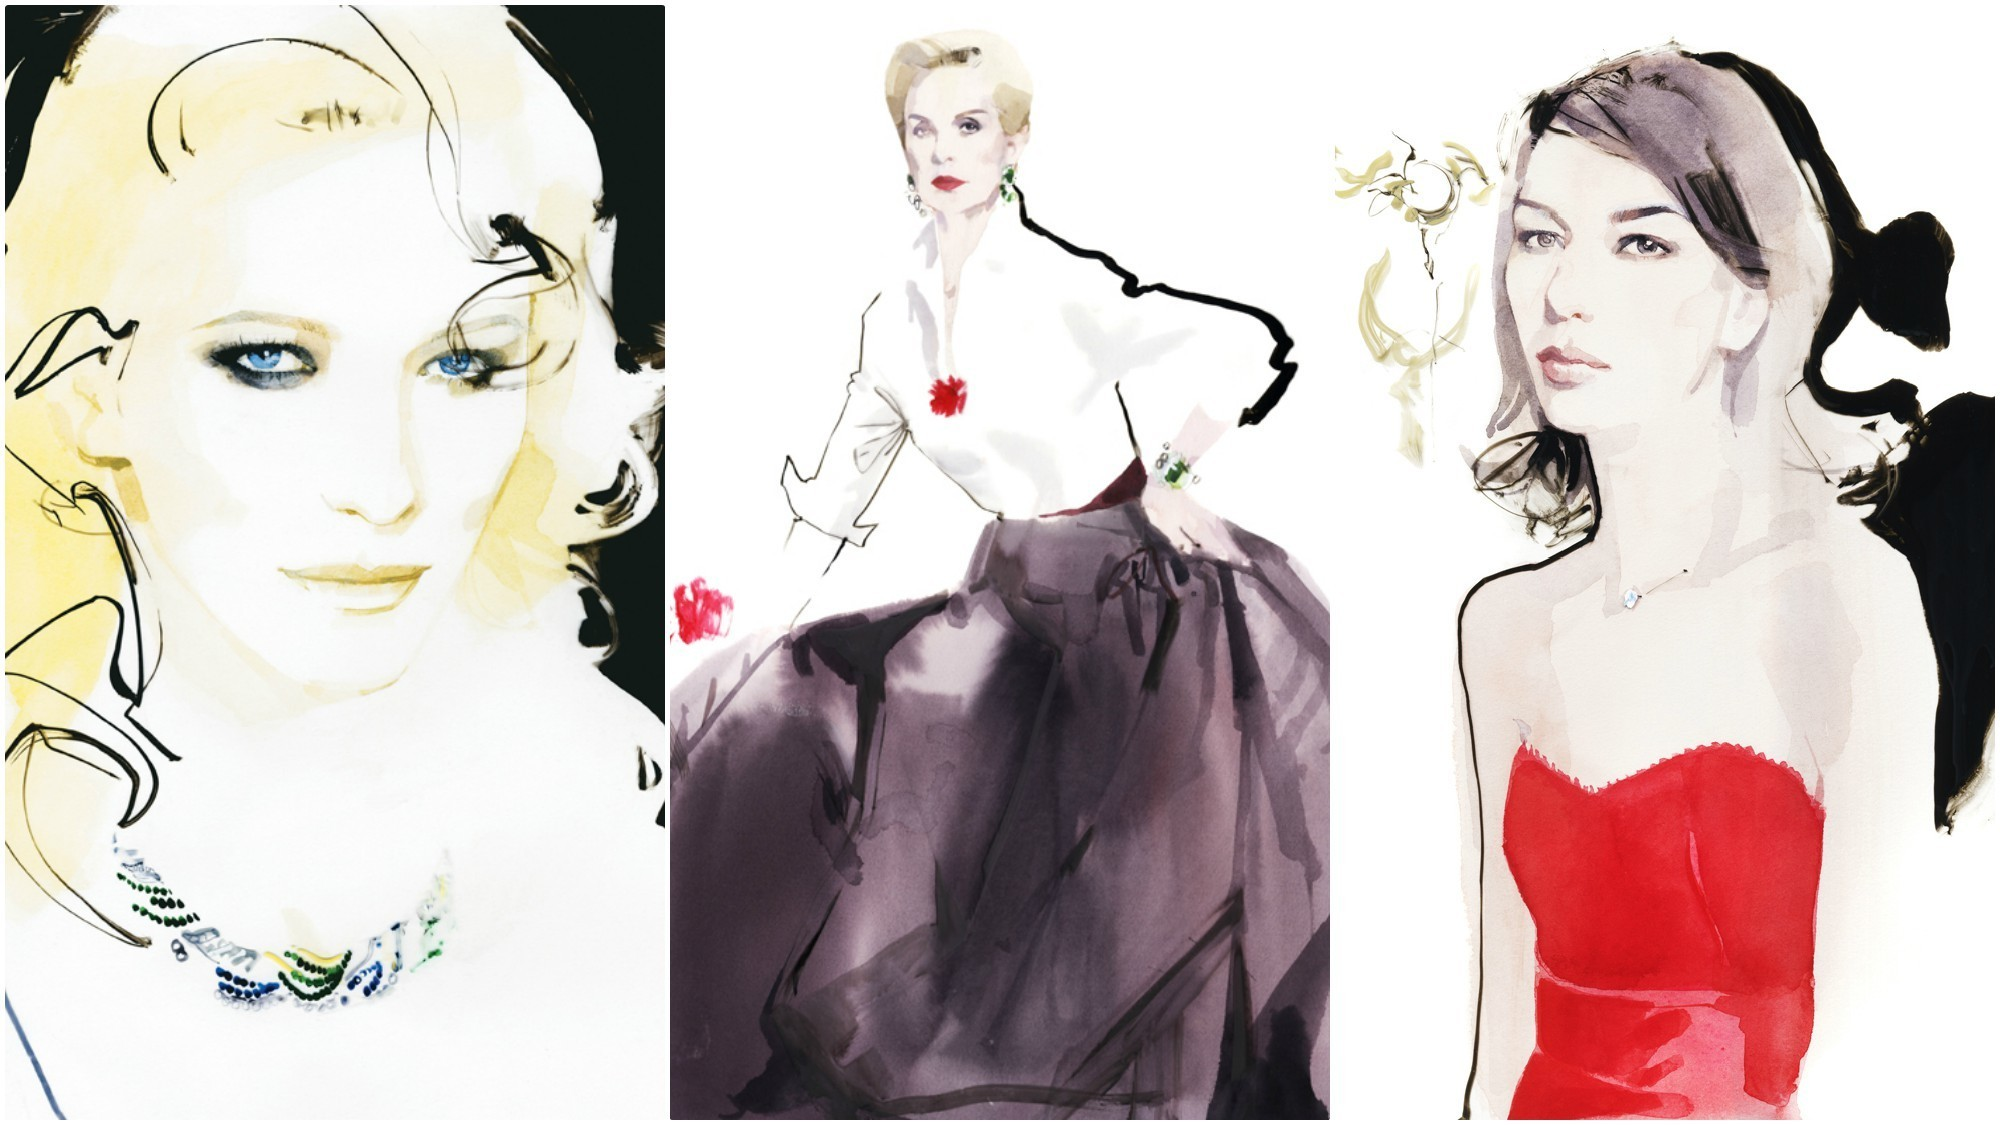 Renderings of Cate Blanchett, from left, Carolina Herrera and Sofia Coppola by fashion illustrator and celebrity portrait artist David Downton.